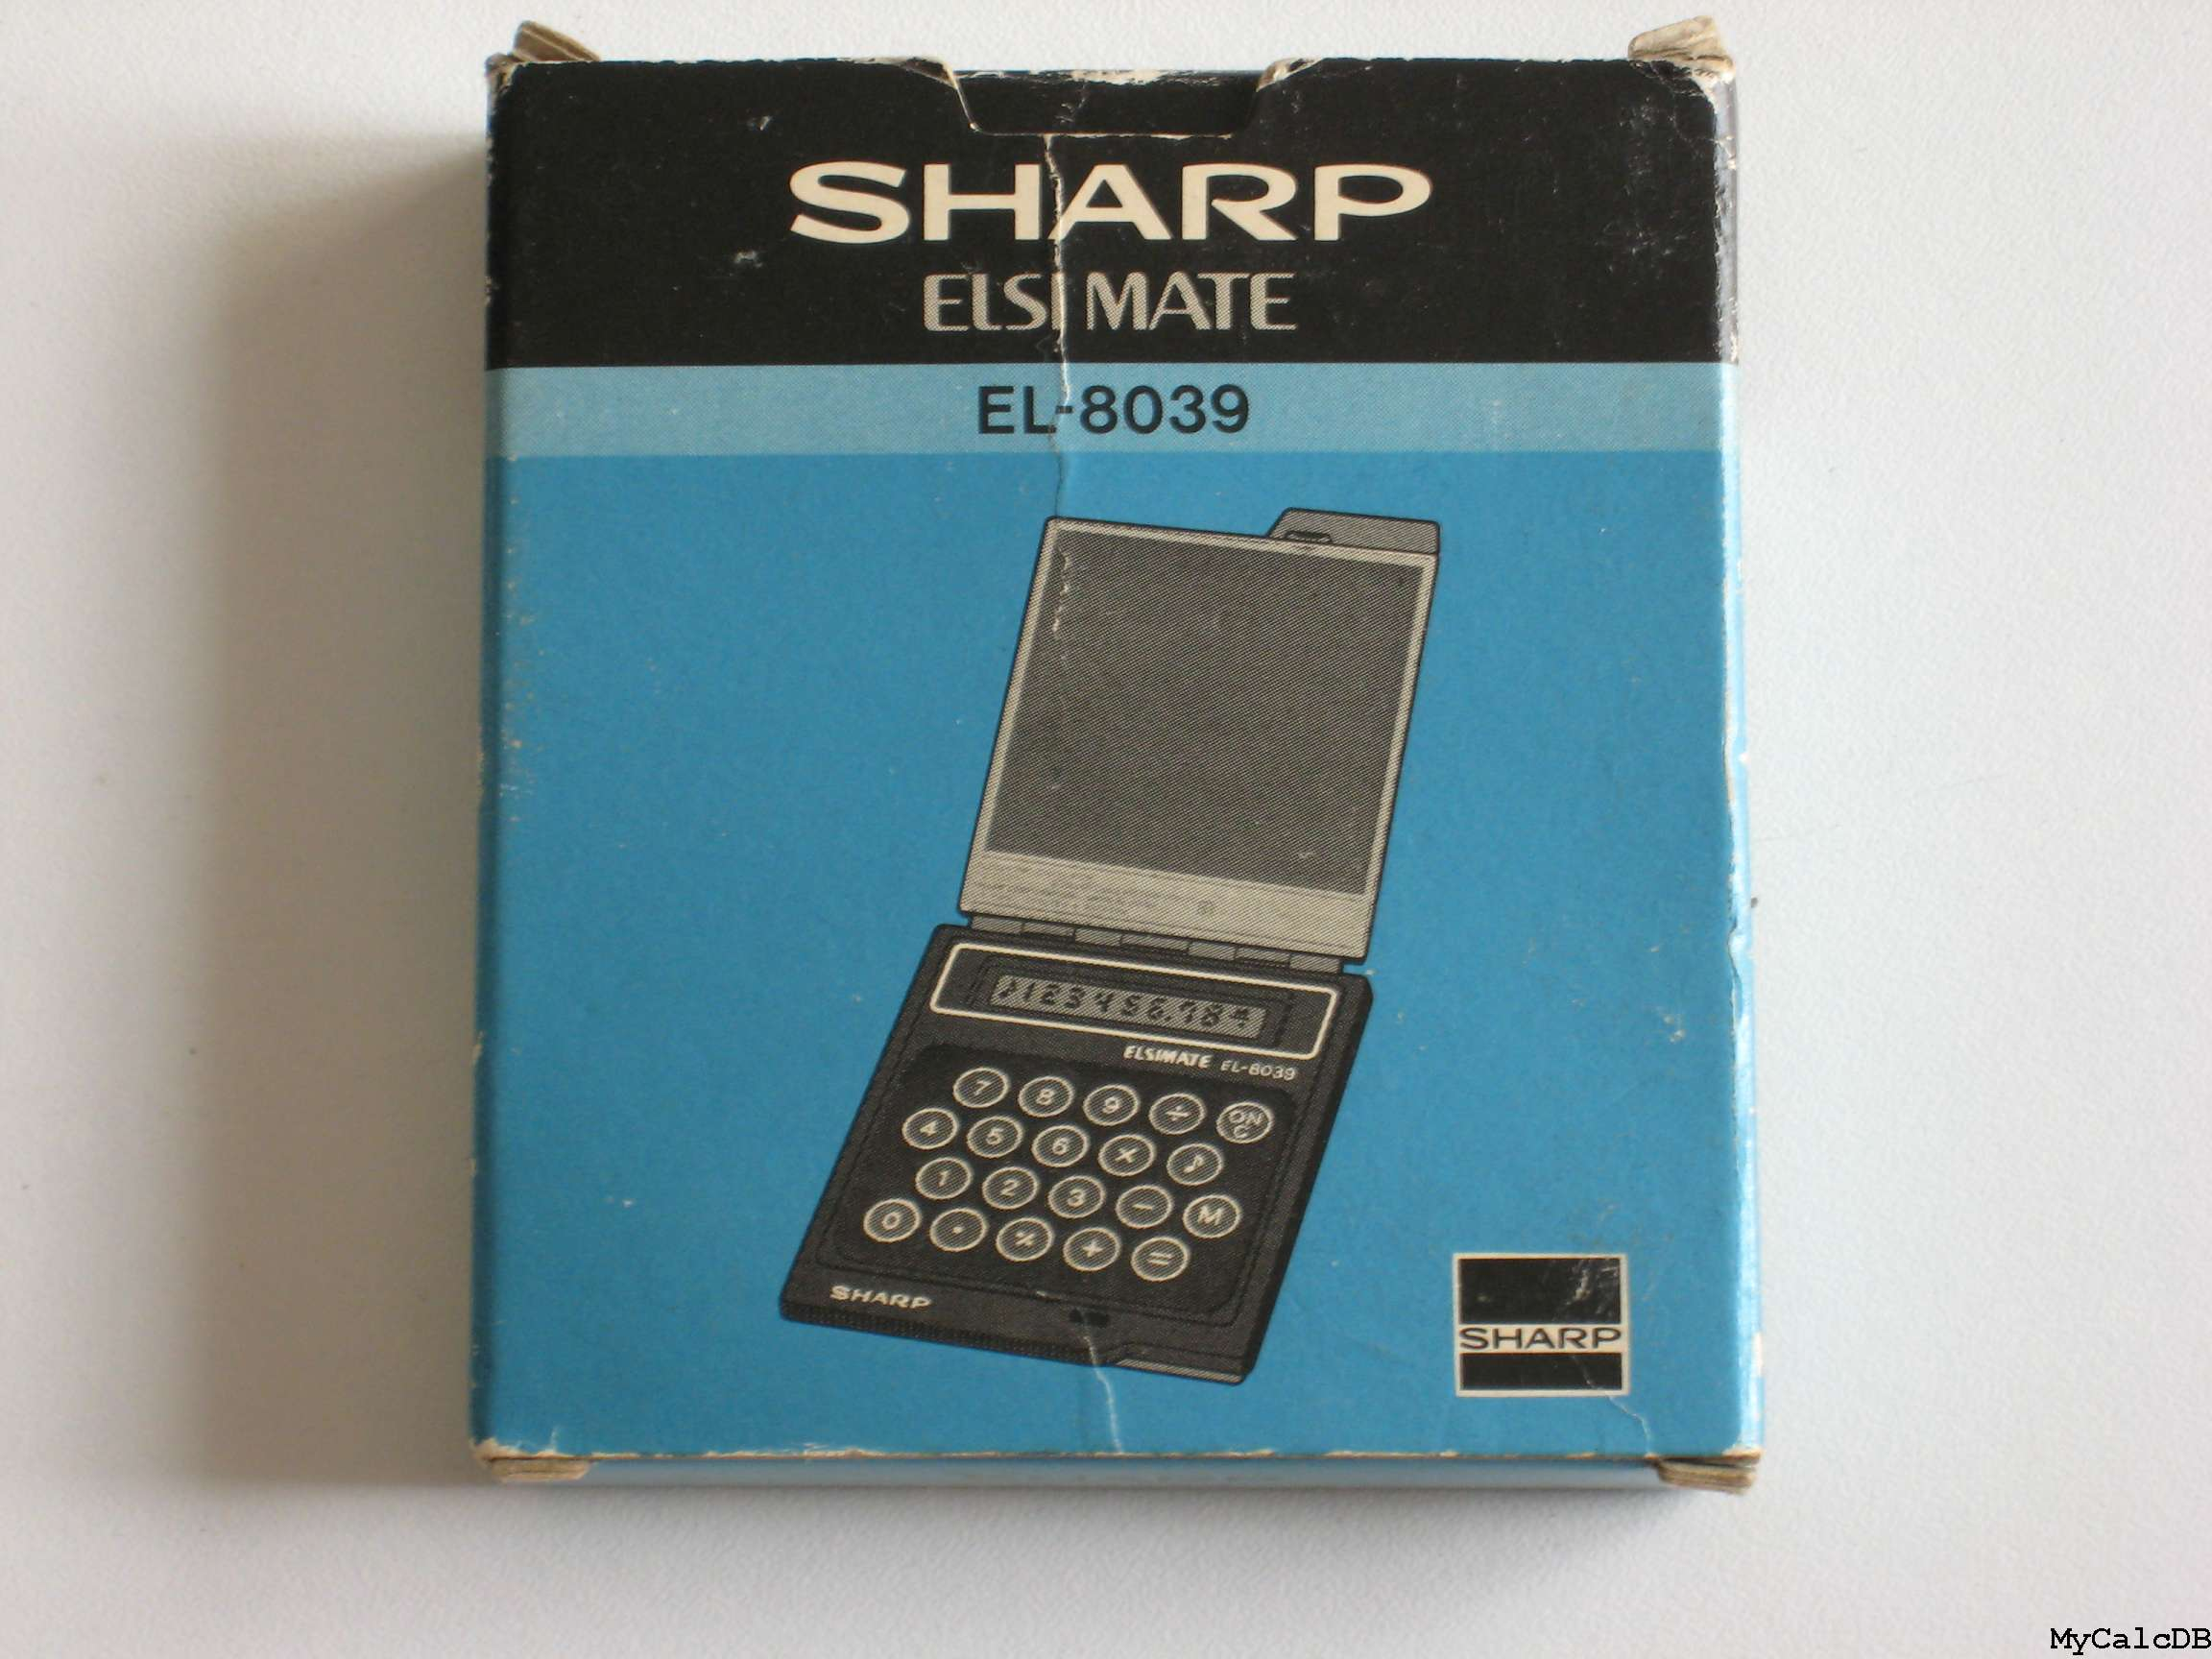 Sharp EL-8039